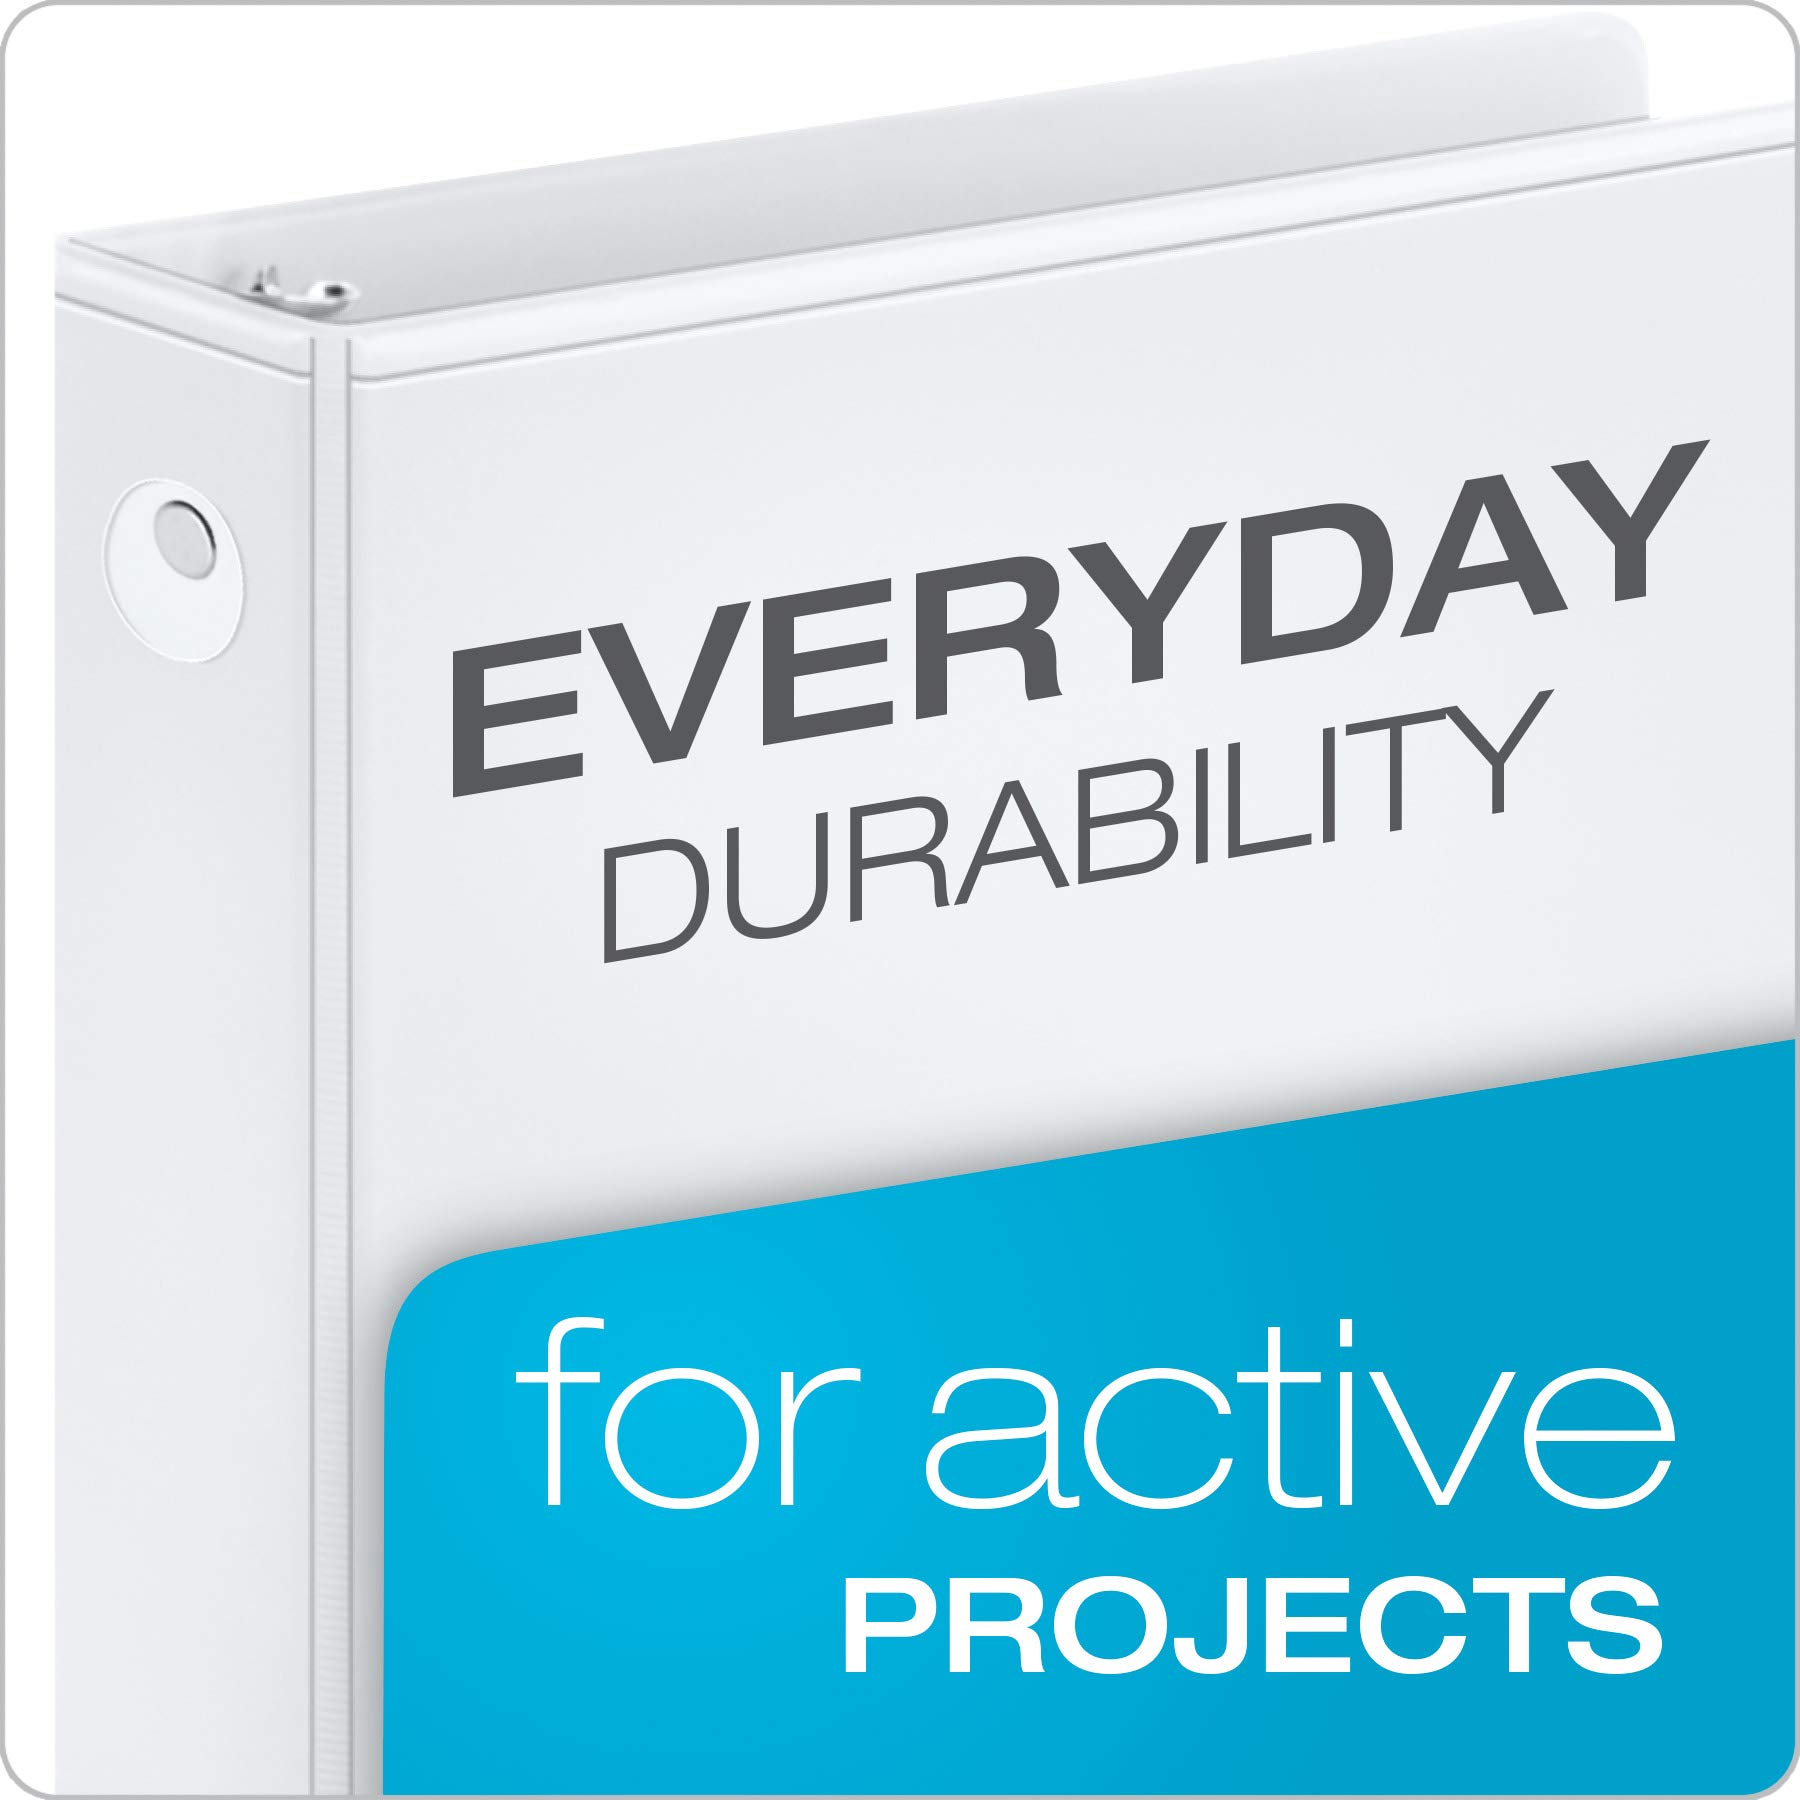 Cardinal Economy 3-Ring Binders, 3'', Round Rings, Holds 625 Sheets, ClearVue Presentation View, Non-Stick, White, Carton of 12 (90651) by Cardinal (Image #2)